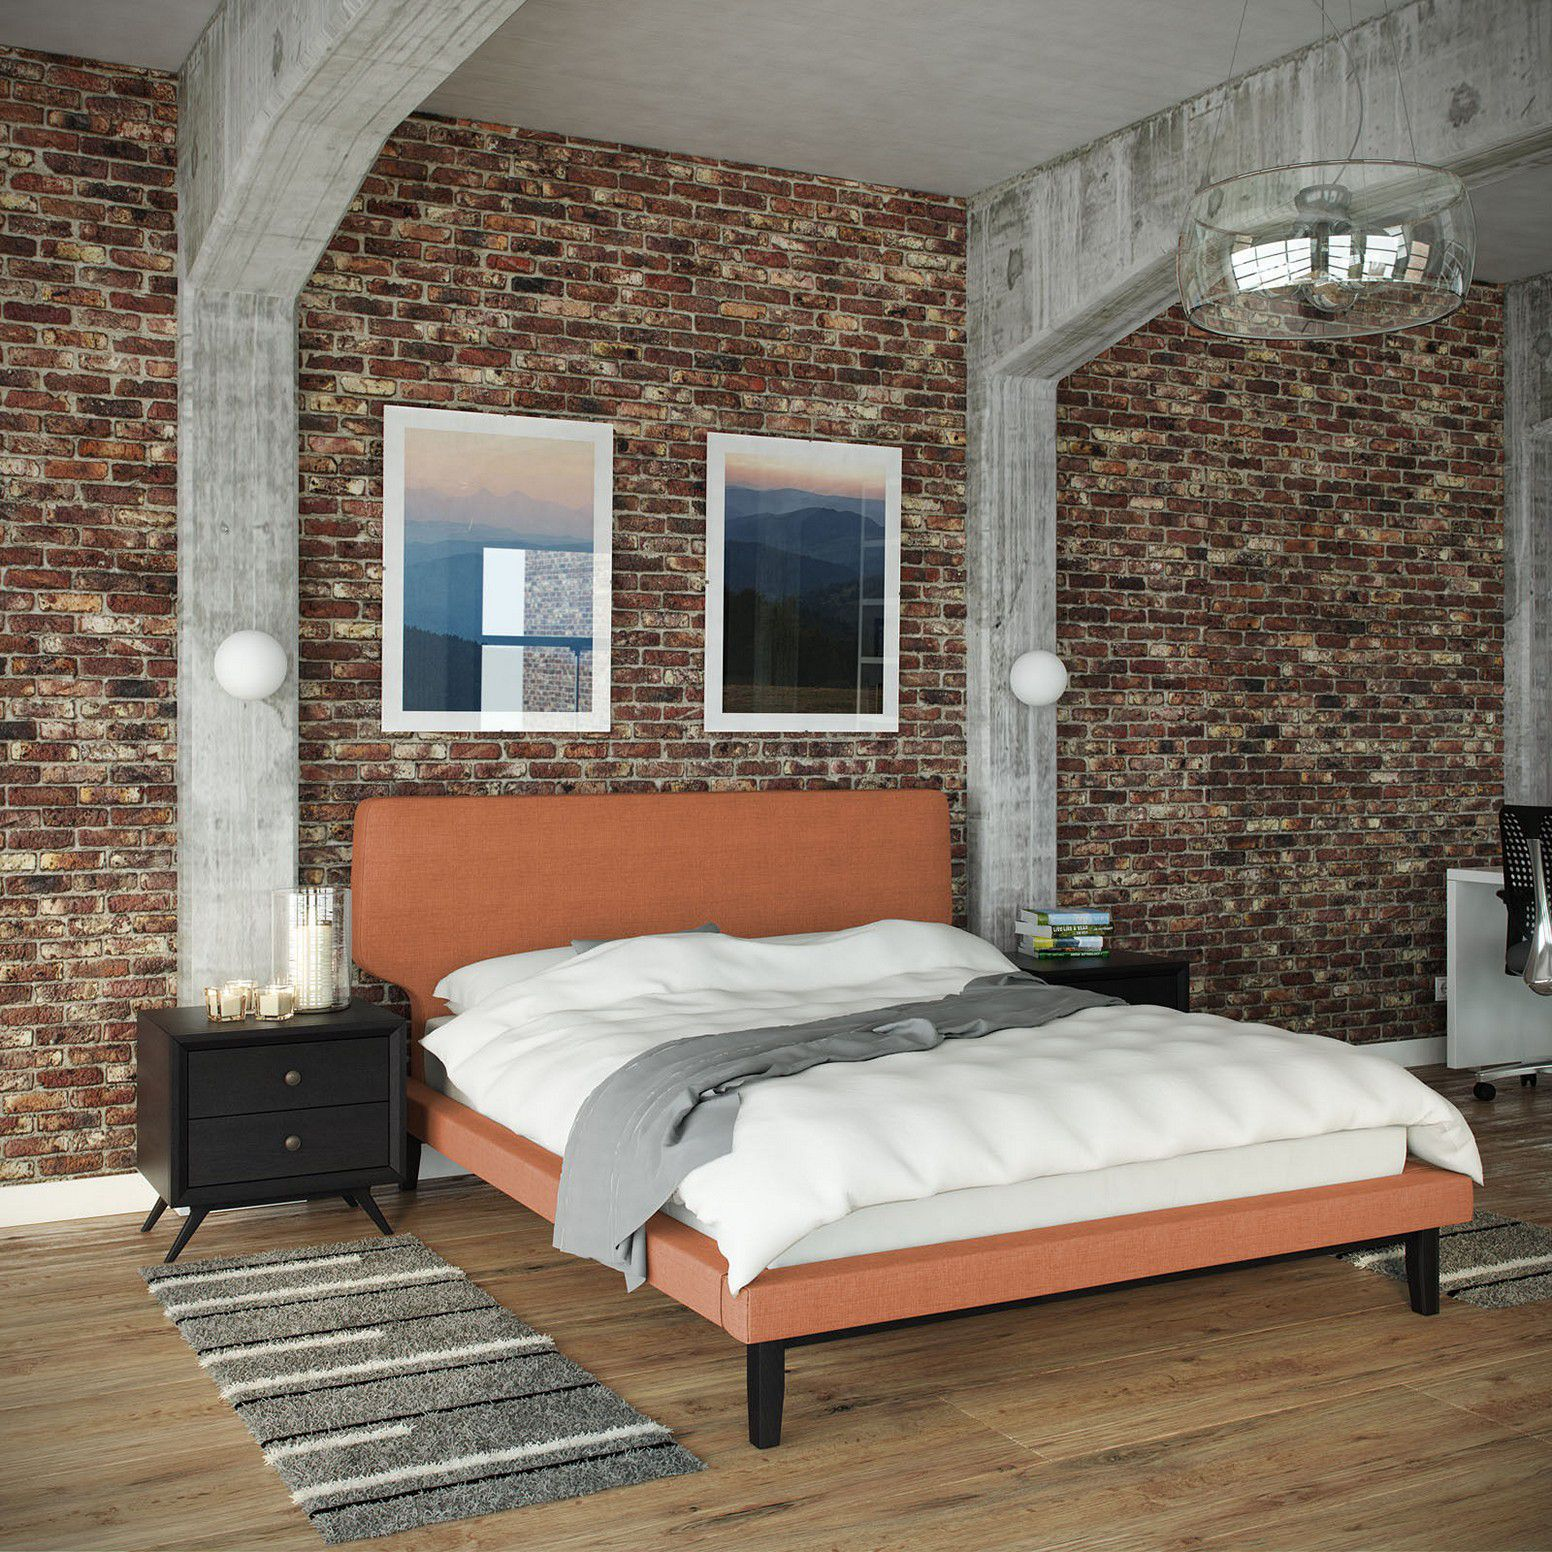 Lovely Design Of The Brown Wooden Floor Added With Grey Tile Wall Ideas As The Bedroom Small Areas